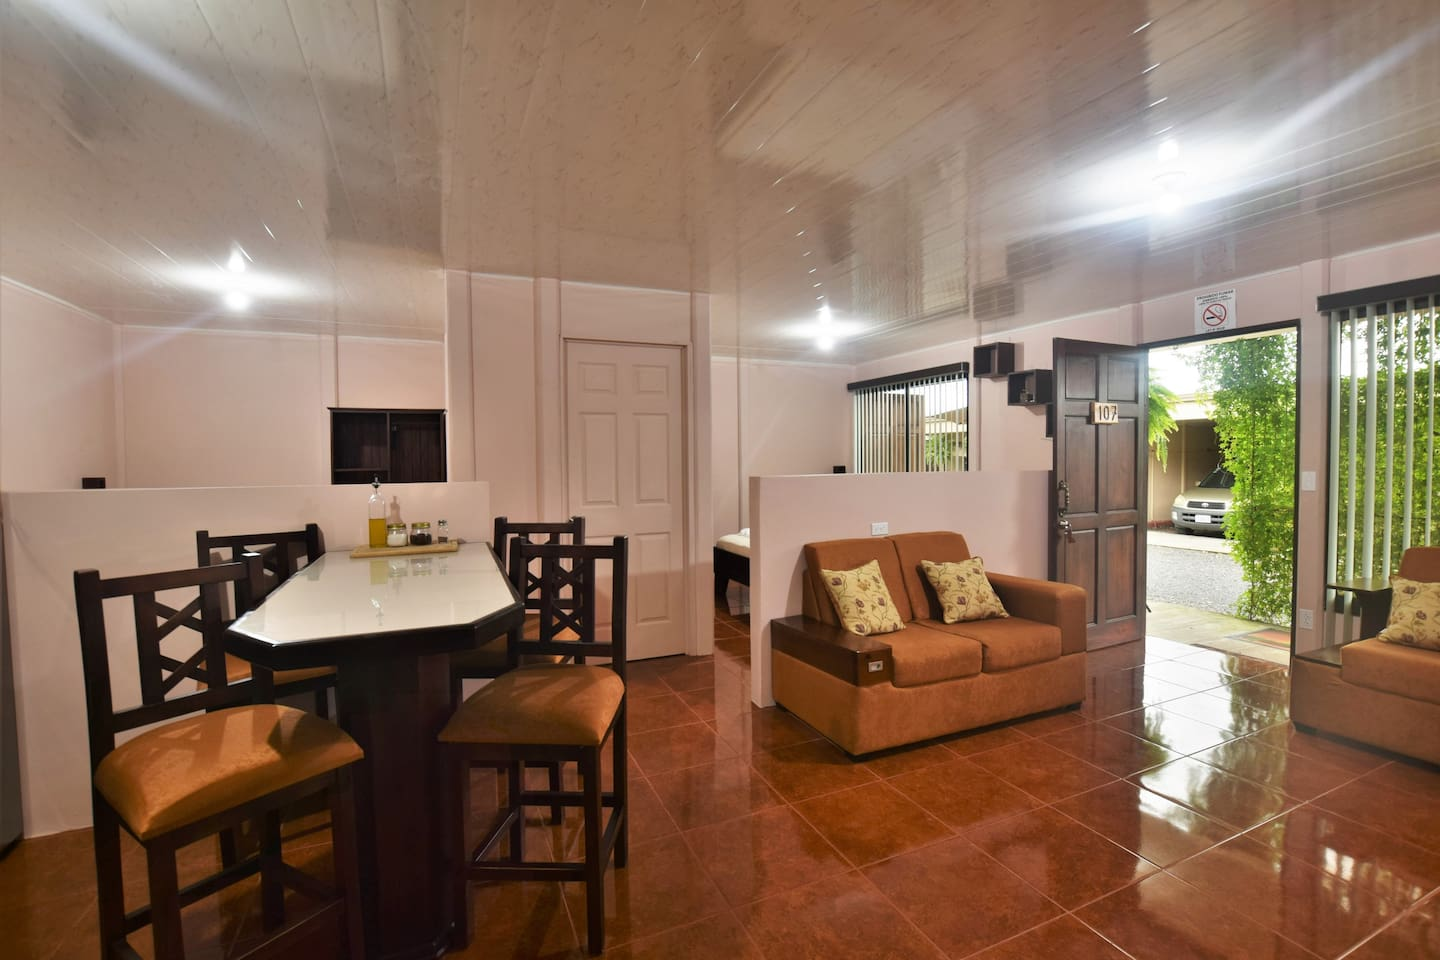 Three bedroomed apartment with all the facilities for up to 6 people